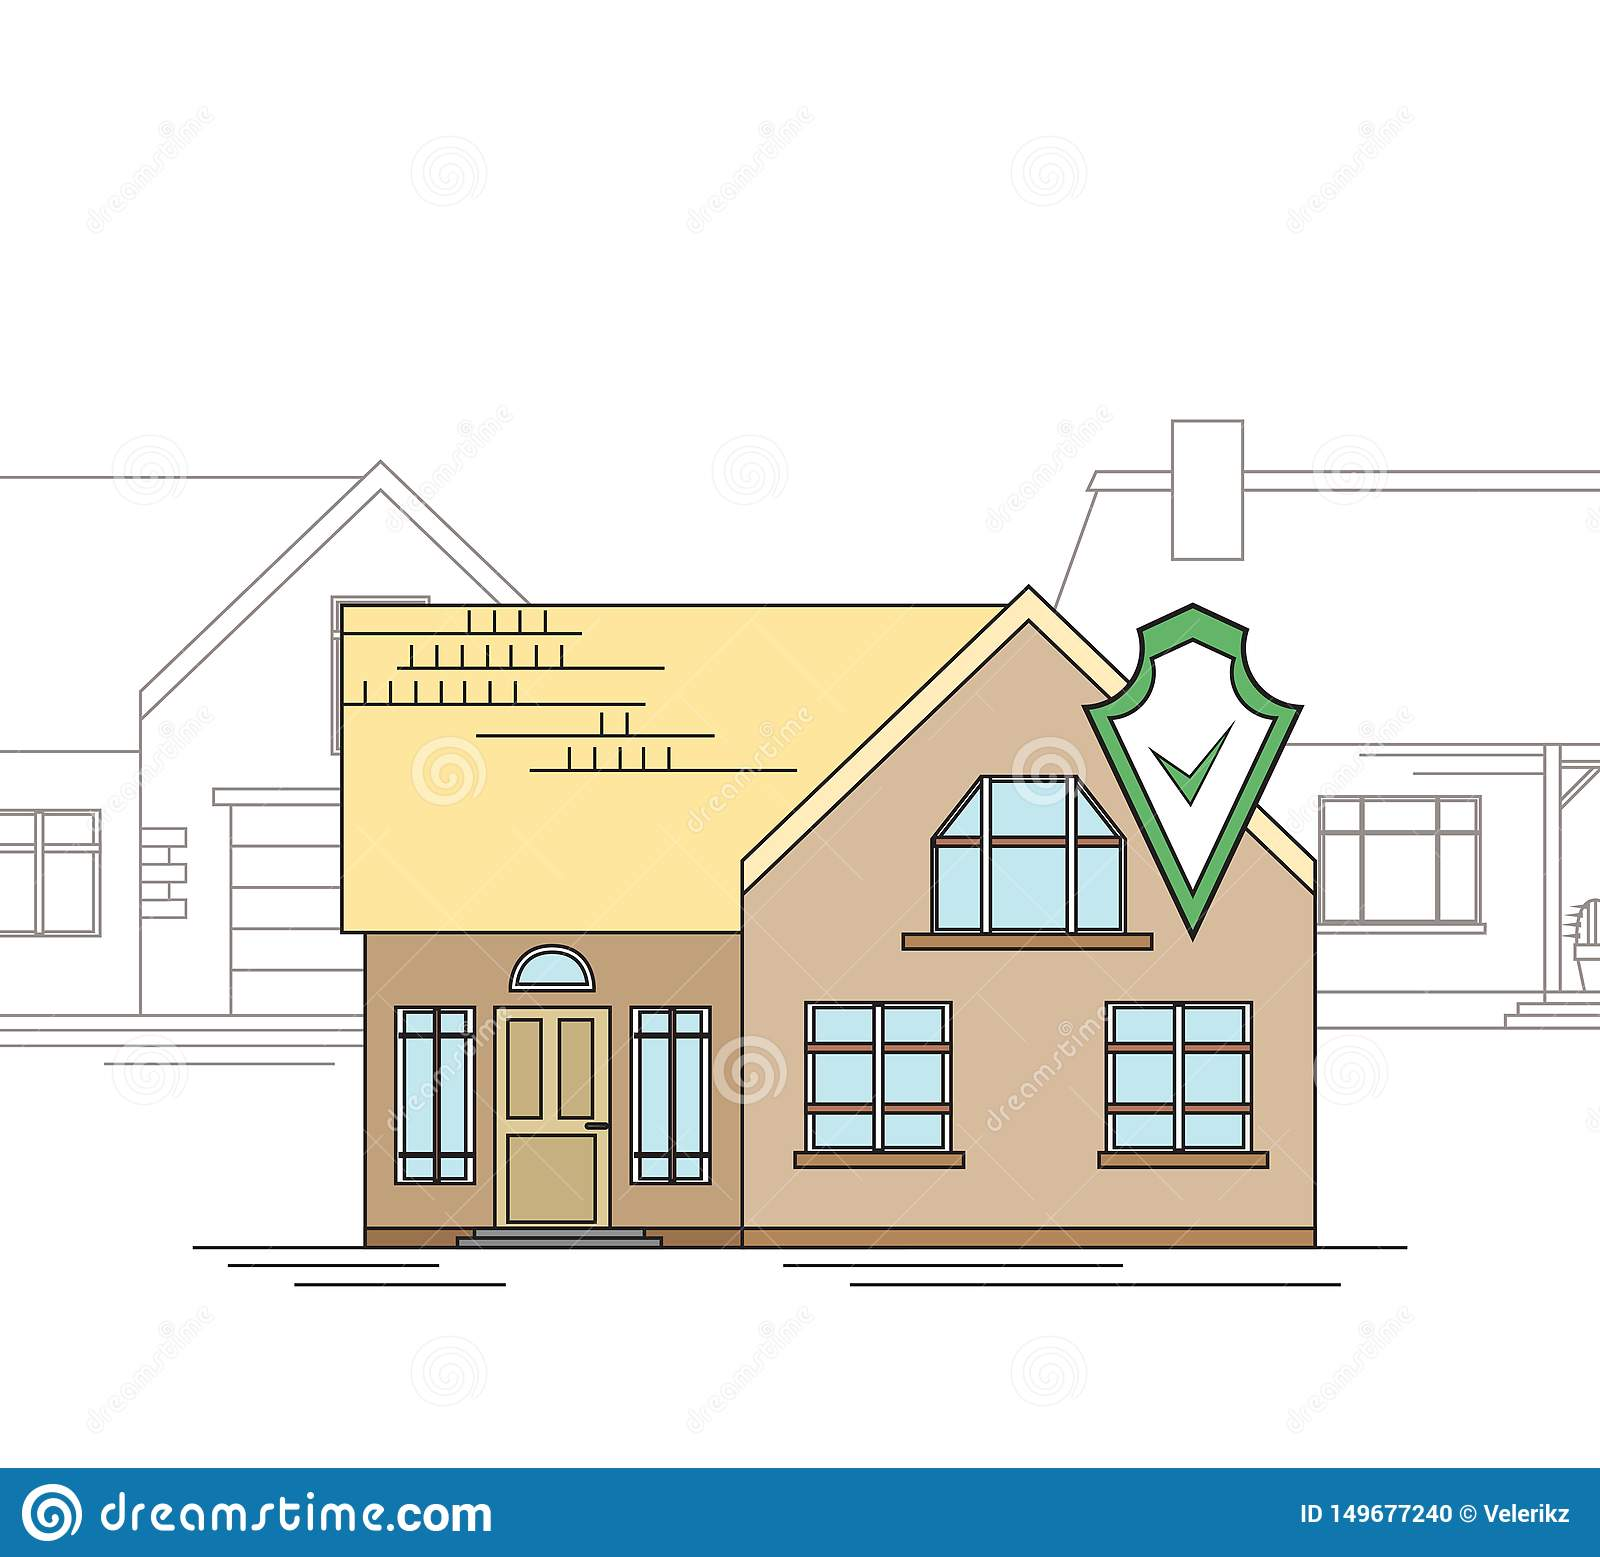 The Country House Company outline drawing of a country house with a security shield